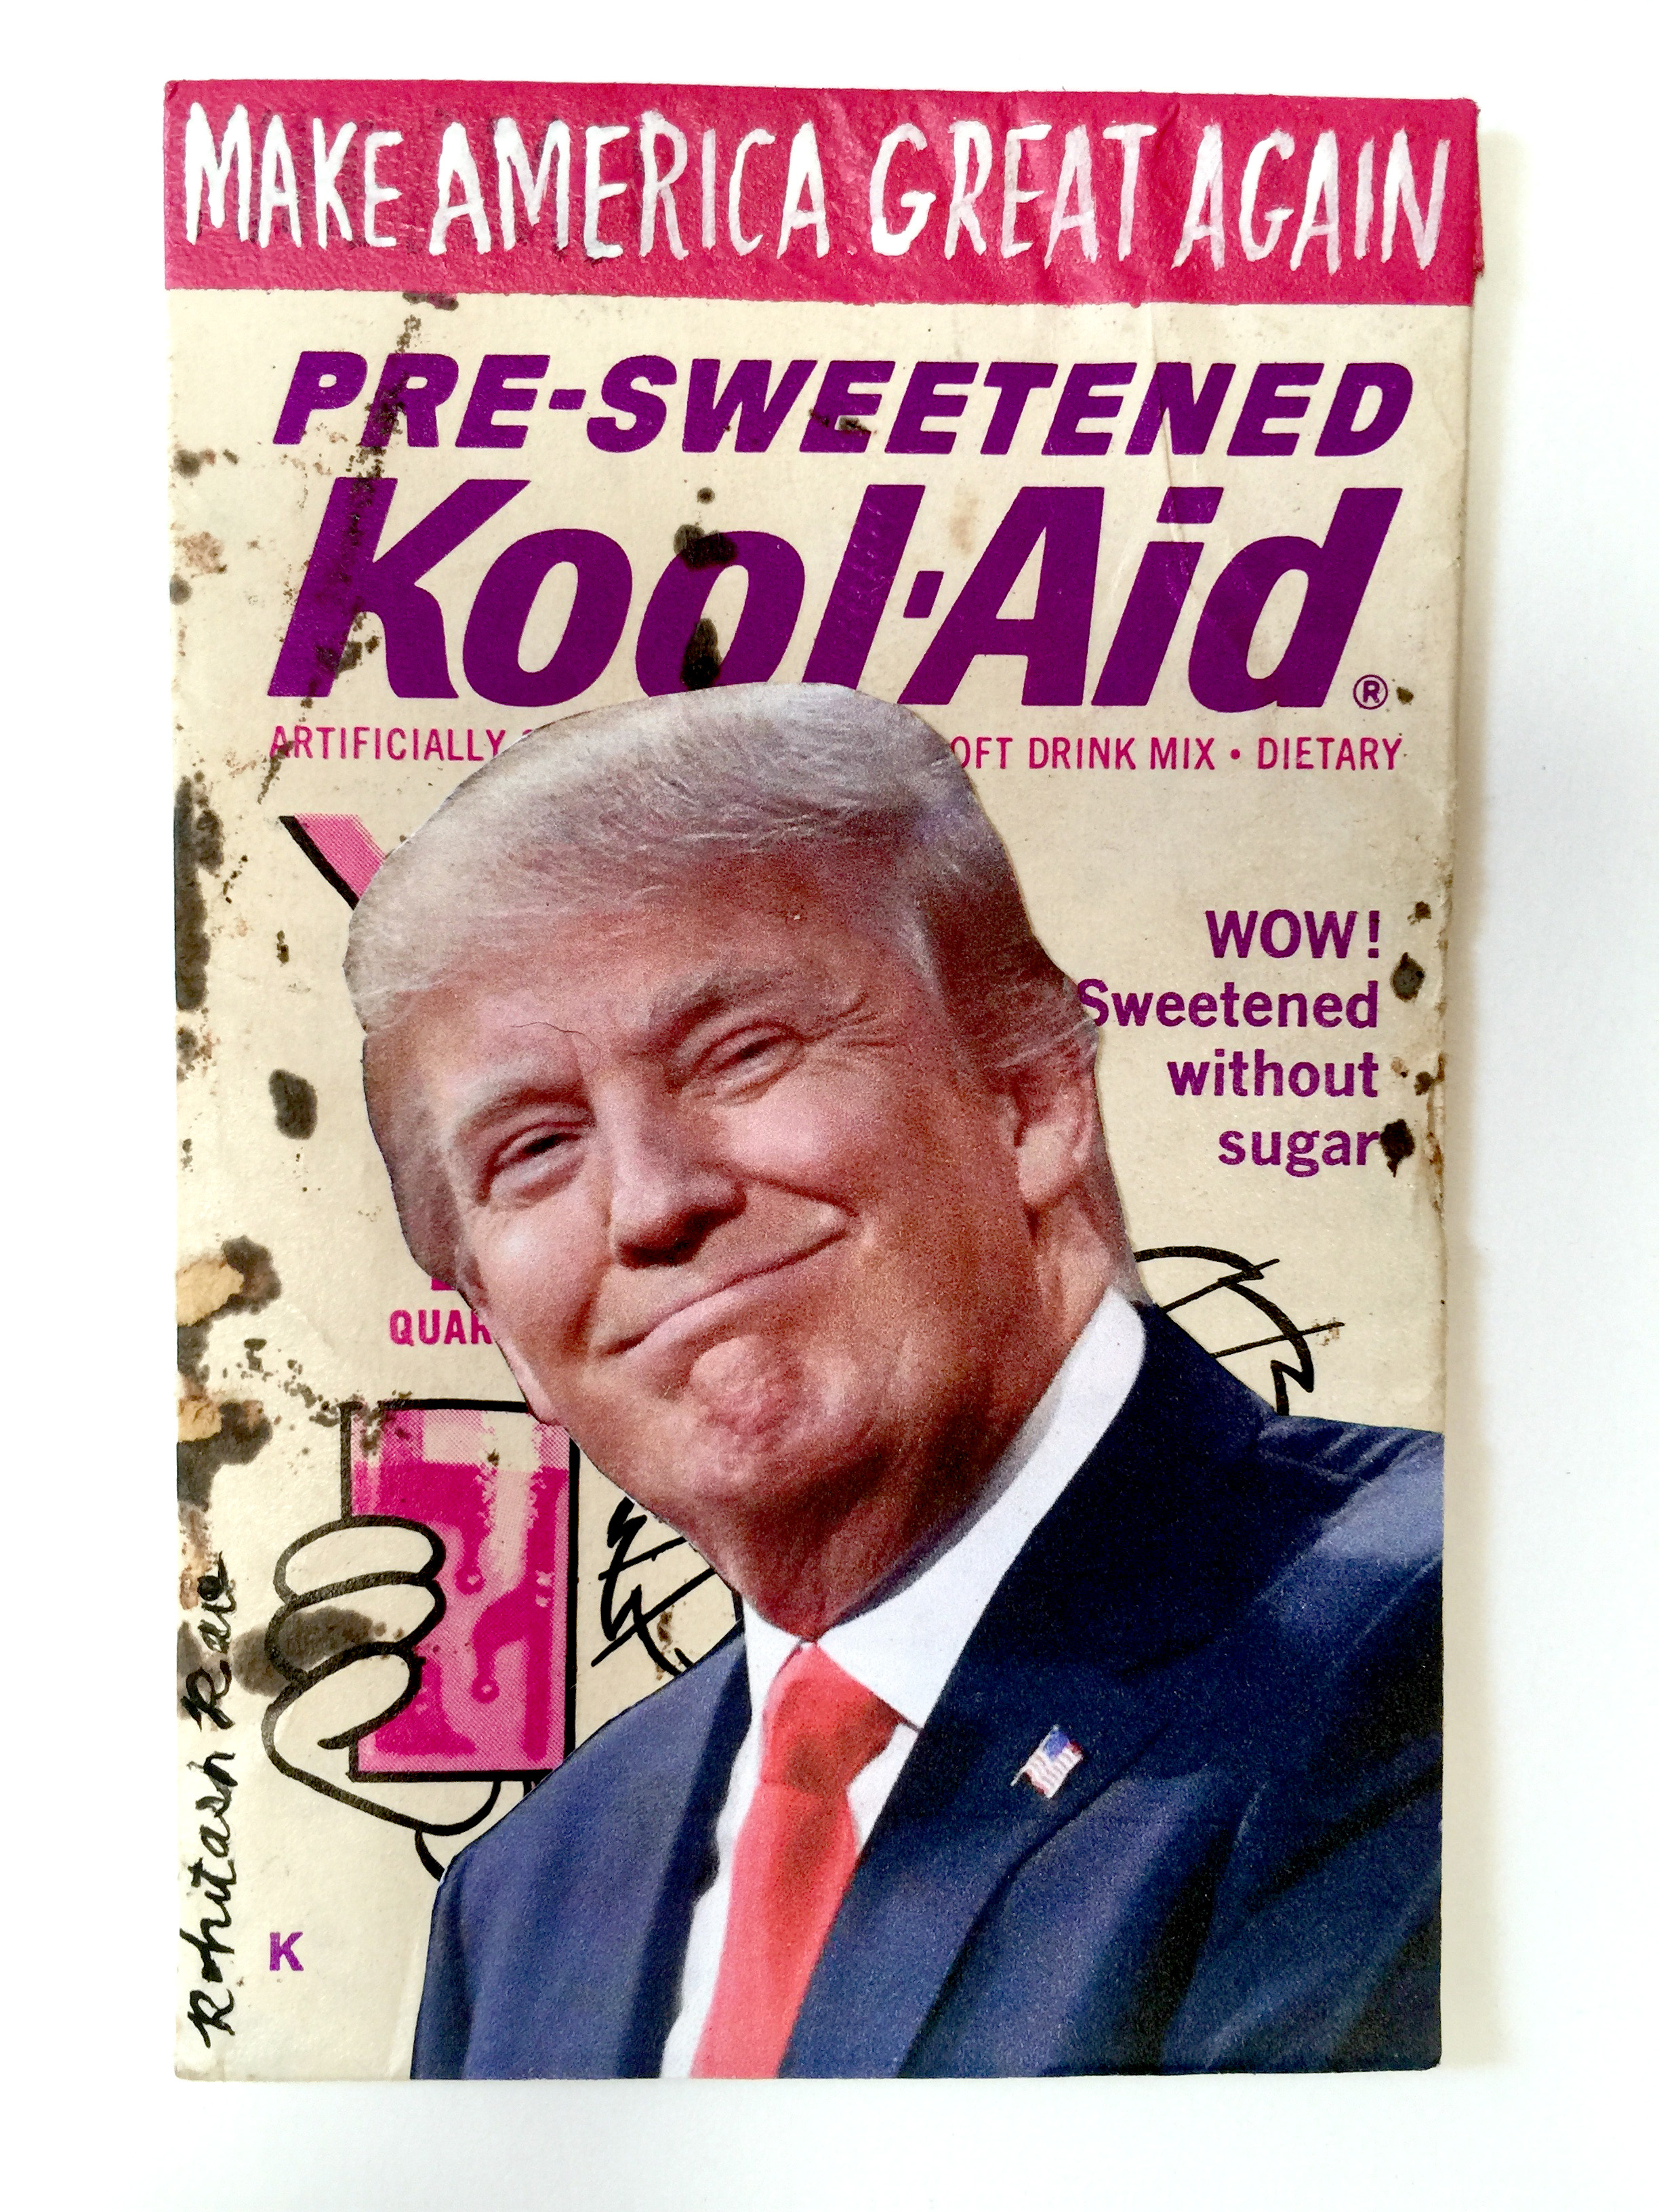 KOOL AID: MAKE AMERICA GREAT AGAIN